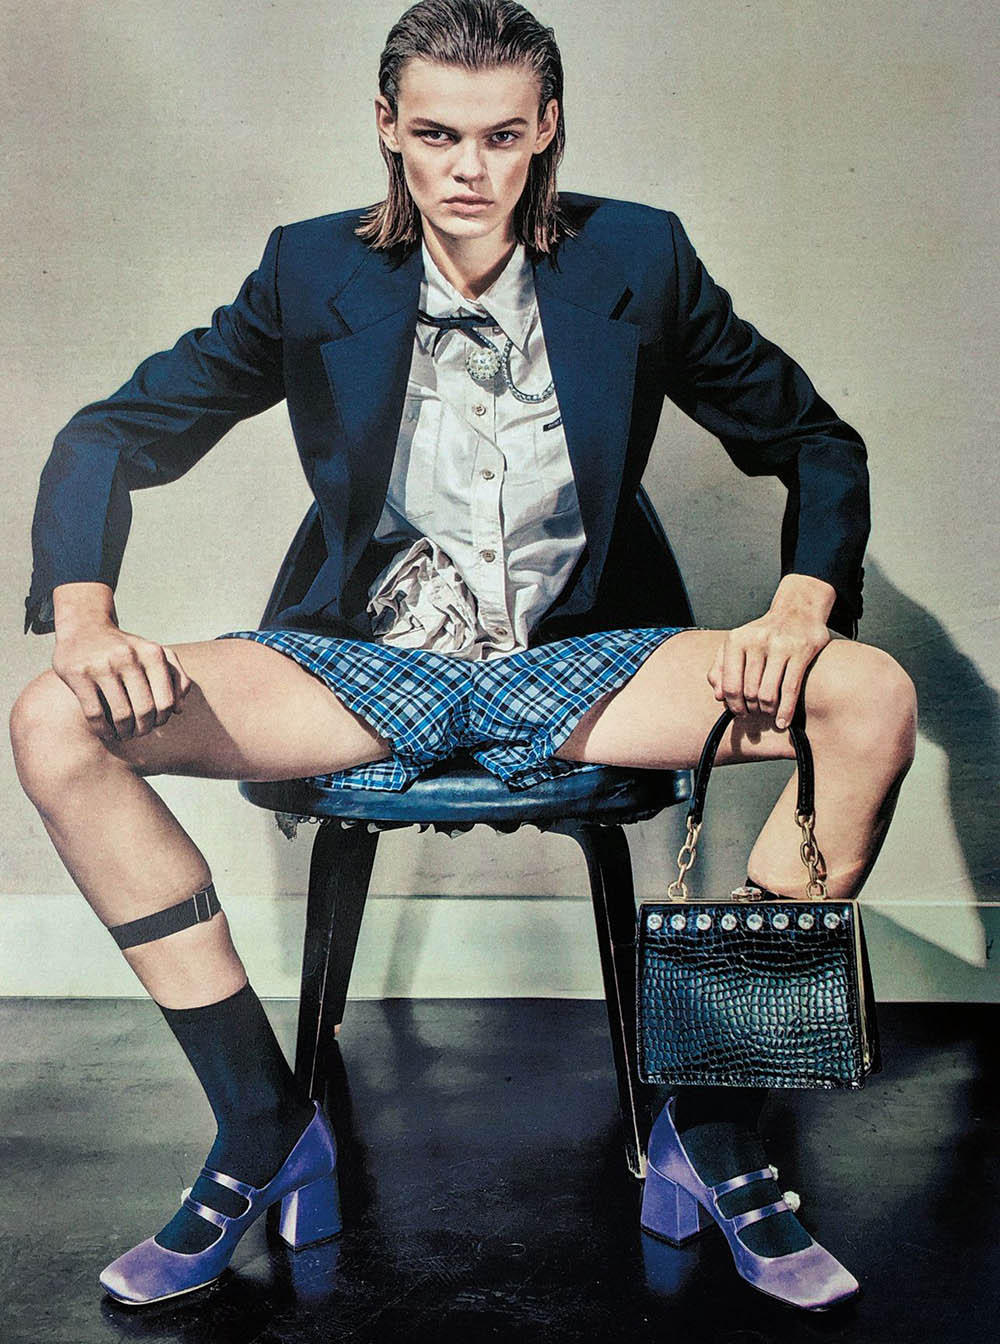 Deviating-From-Gender-by-Steven-Klein-for-CR-Fashion-Book-Issue- (1).jpg